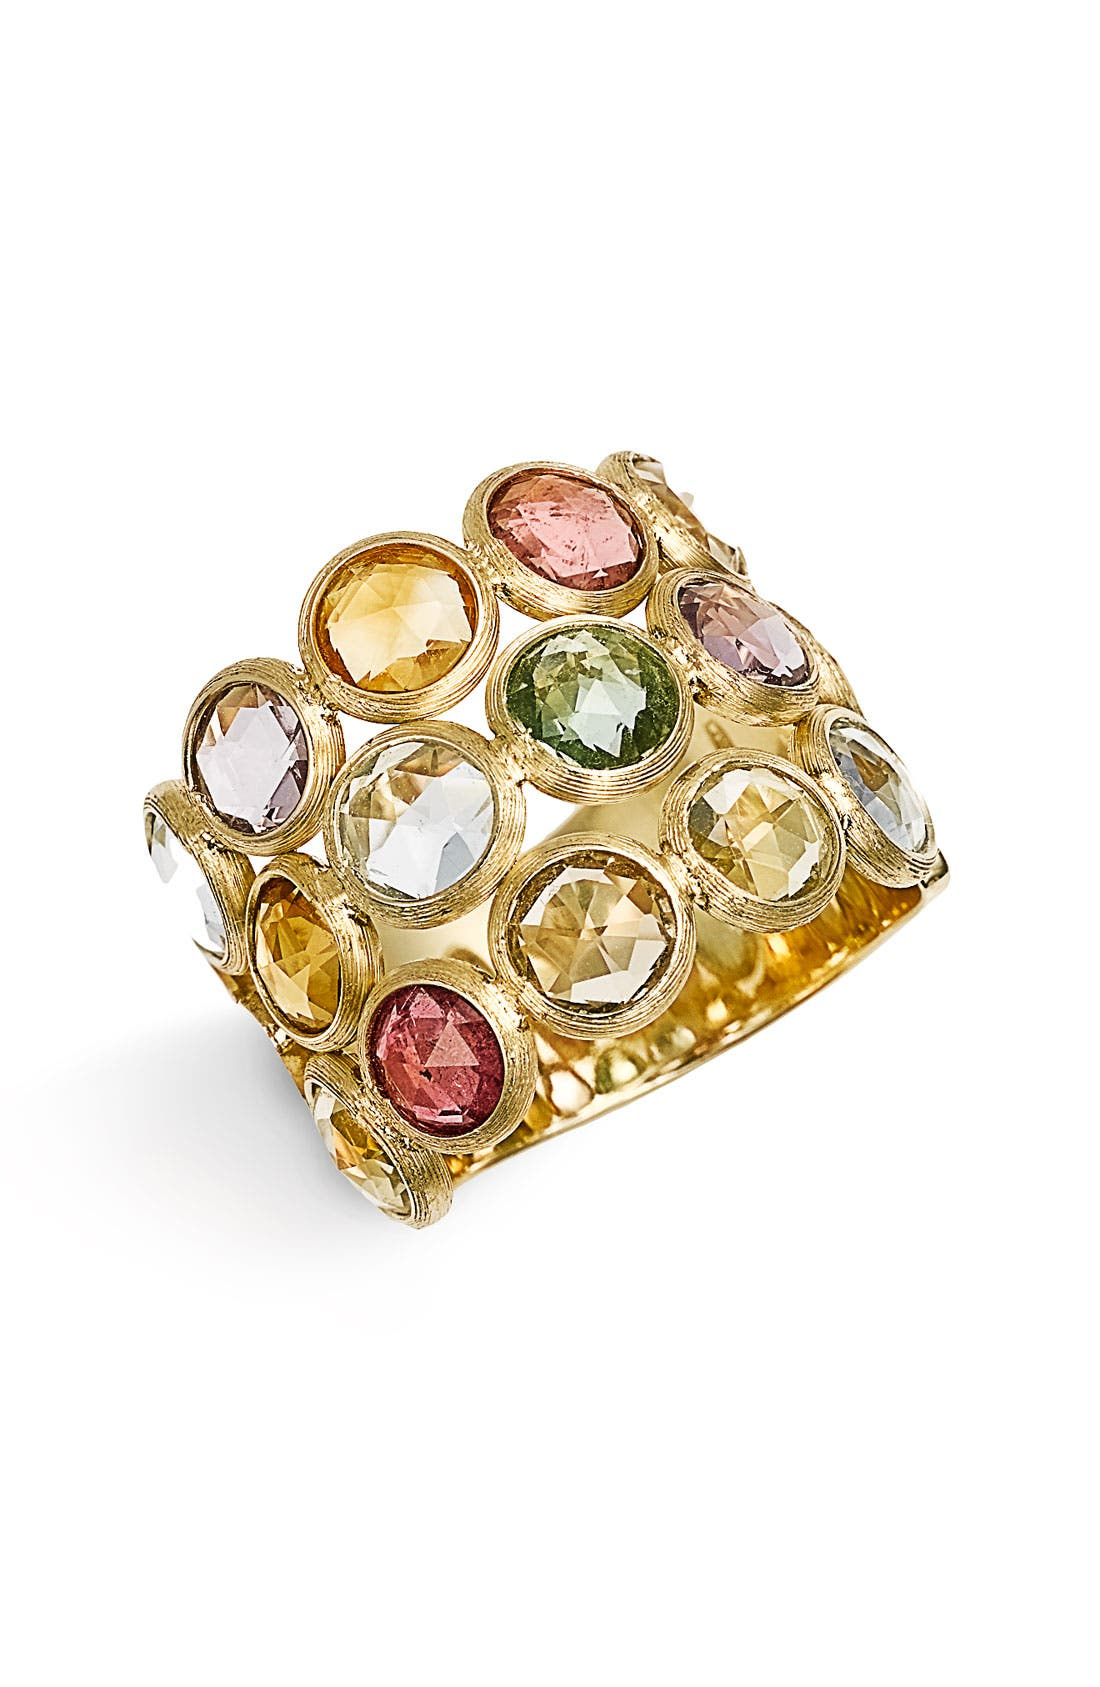 Alternate Image 1 Selected - Marco Bicego 'Jaipur' Multi Stone Ring